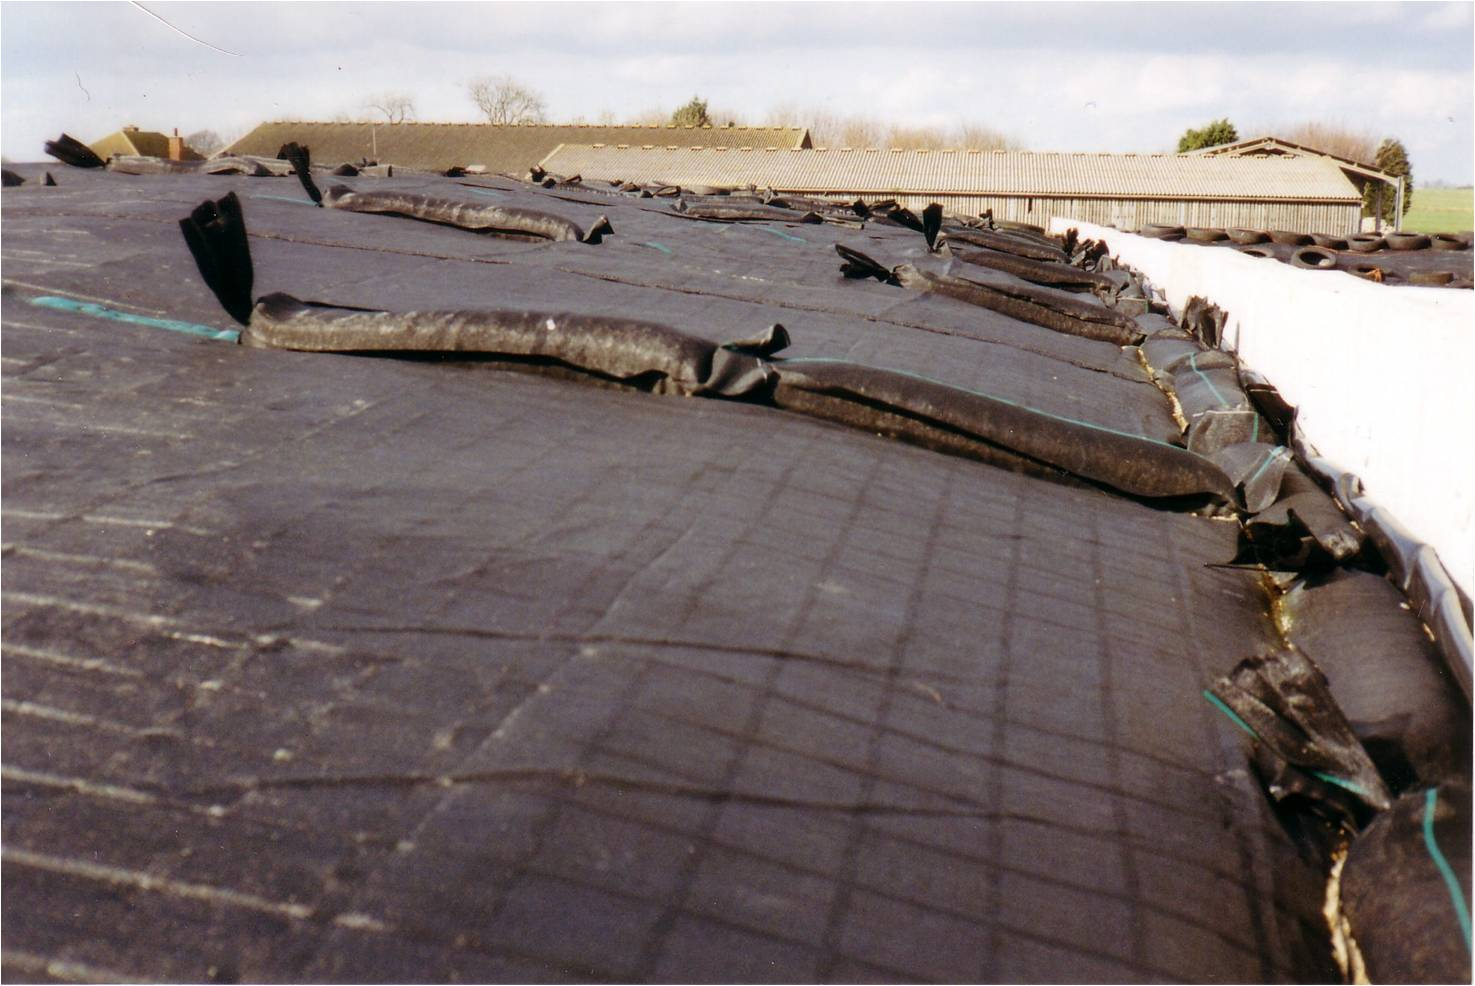 Gravel Bags used for Securing